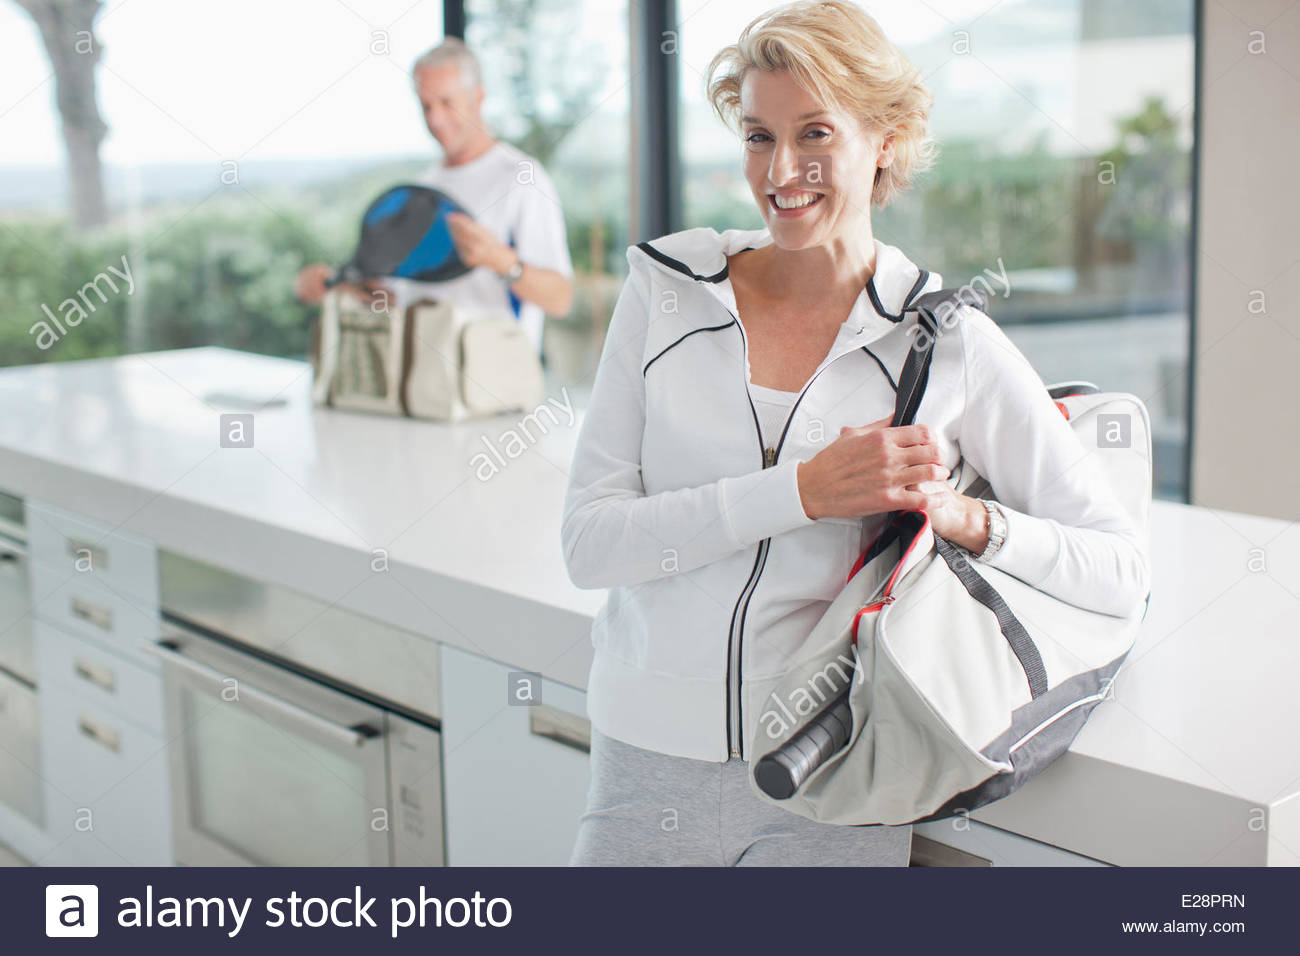 Woman carrying tennis racquet in gym bag - Stock Image